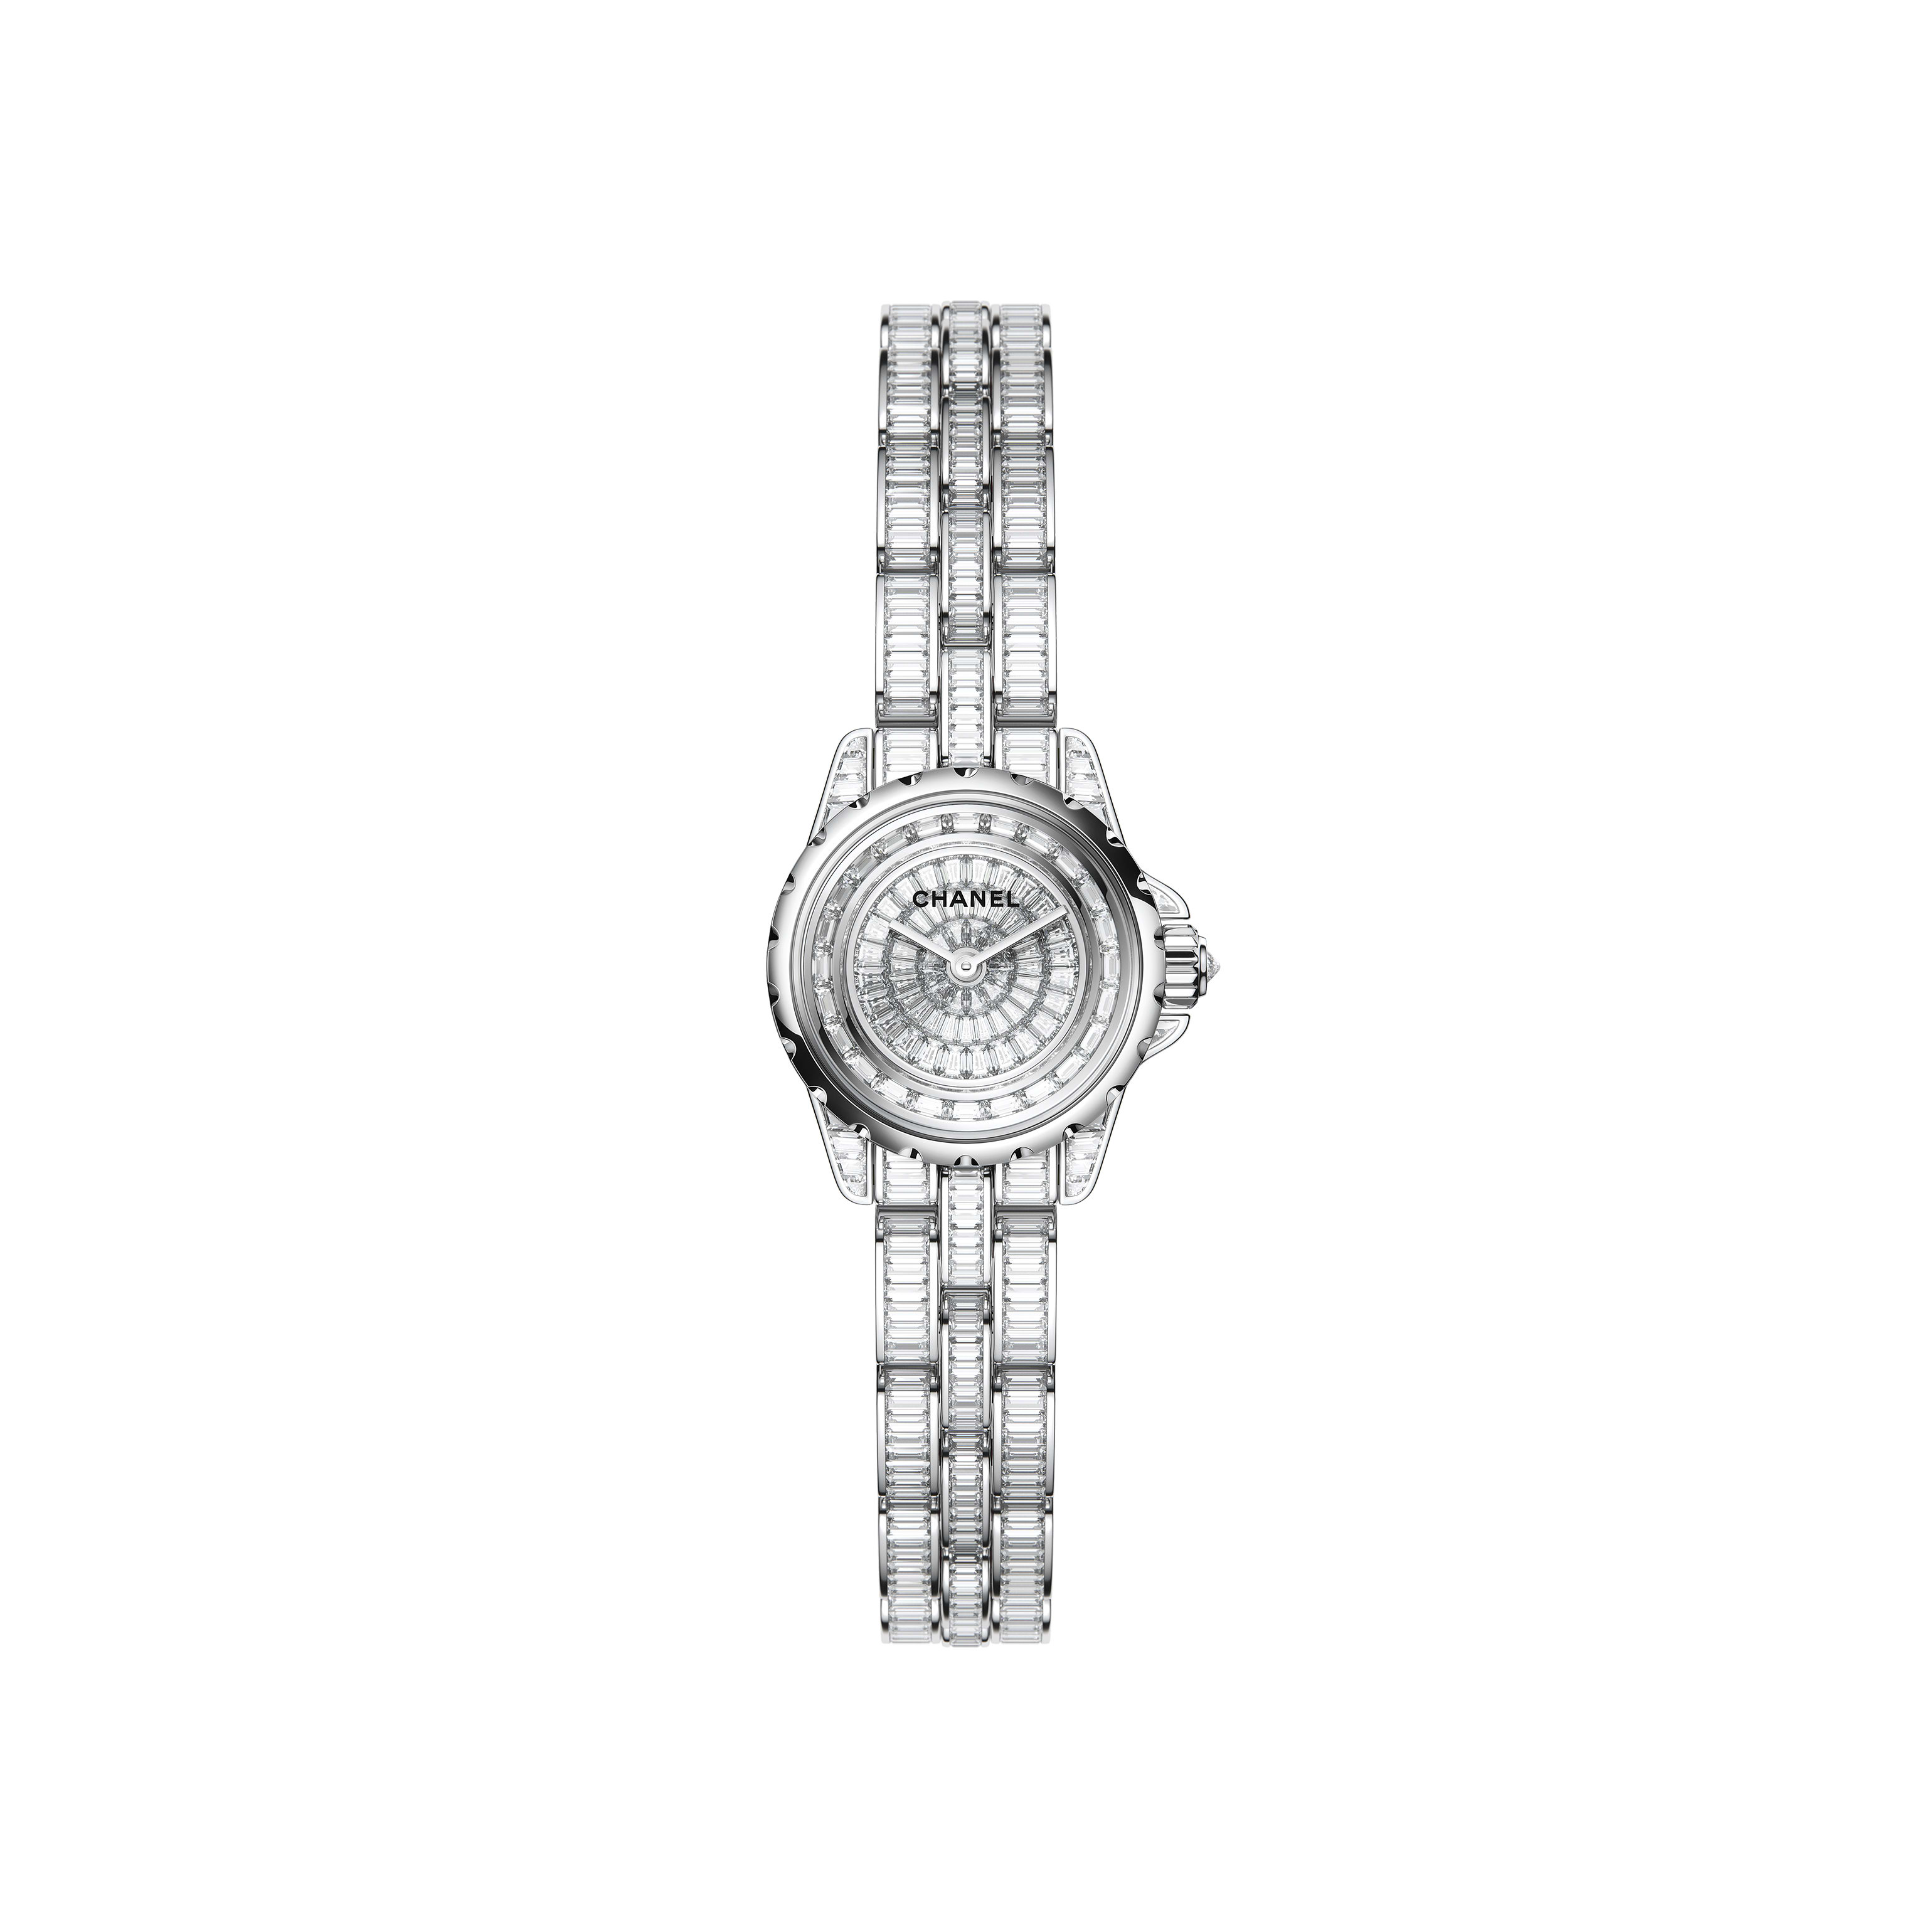 J12·XS High Jewellery Watch, 19 mm - White gold, case, dial, flange and bracelet set with baguette-cut diamonds - CHANEL - Default view - see standard sized version